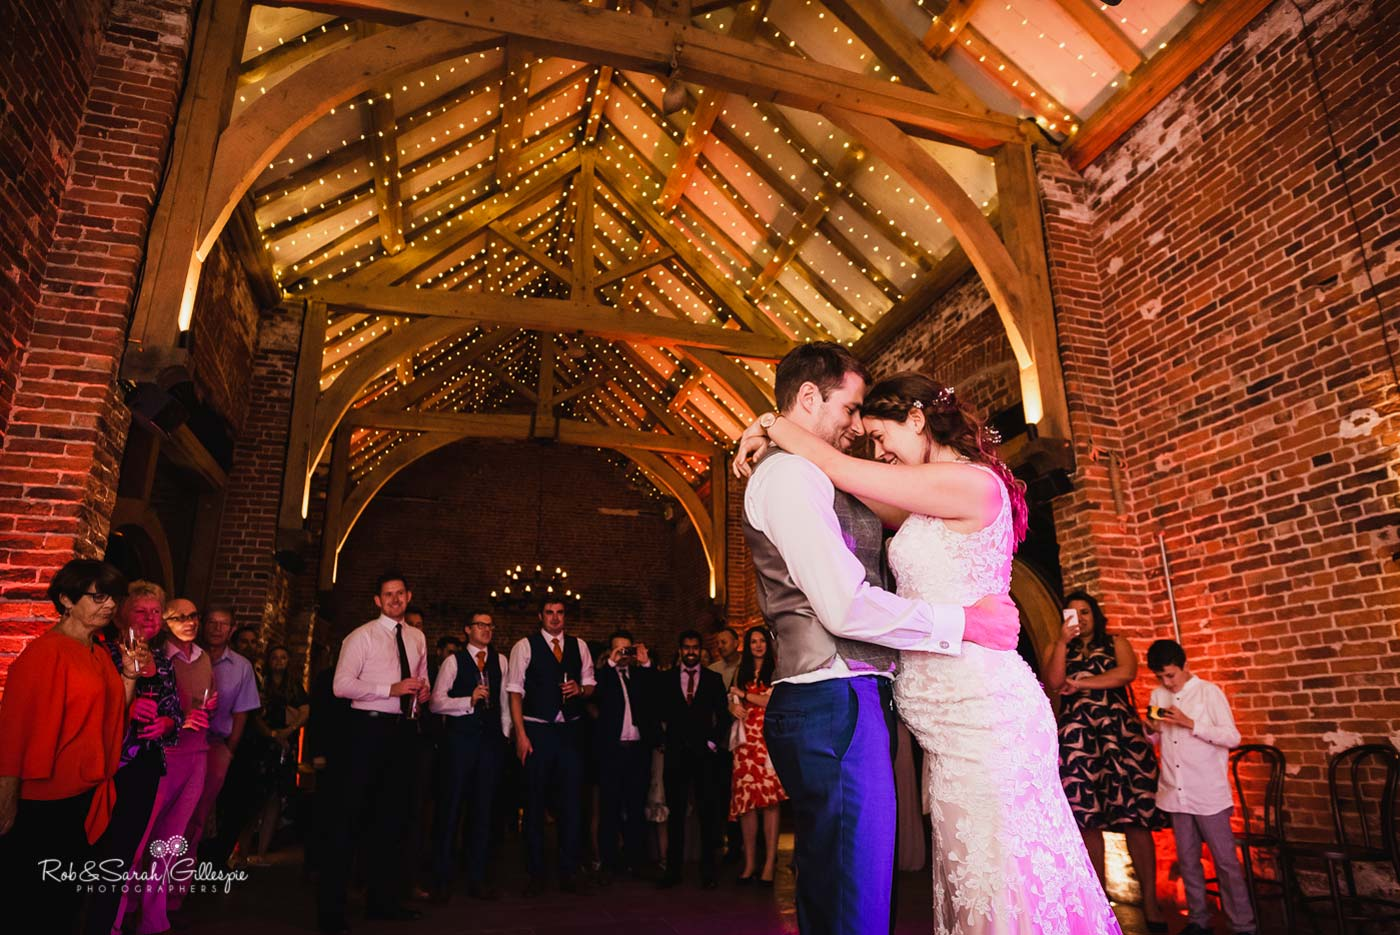 Bride & groom first dance at Hazel Gap Barn wedding